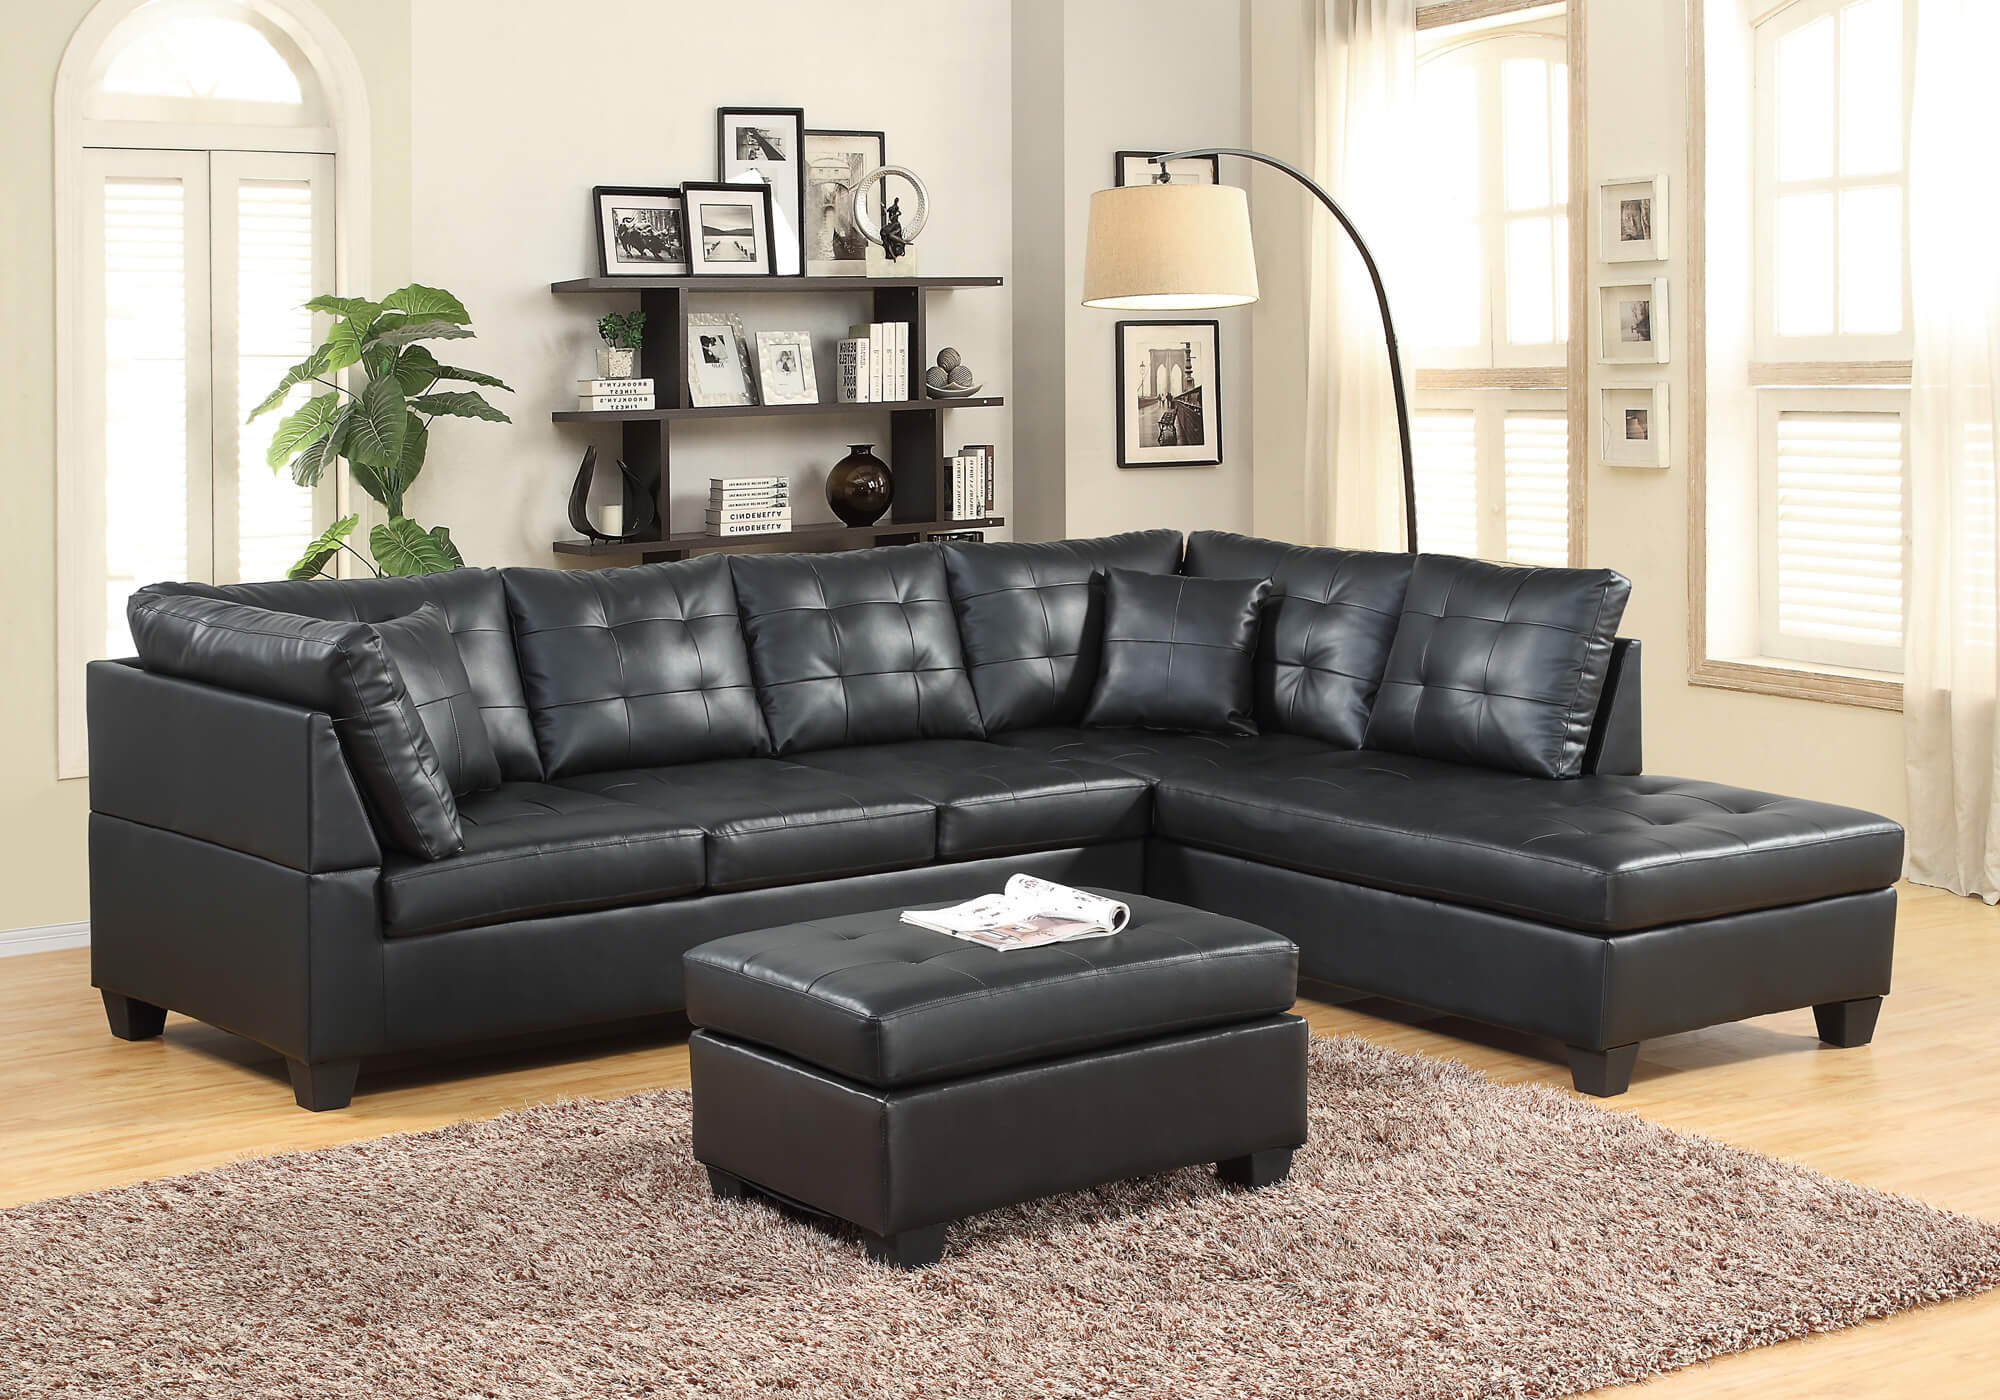 Black leather like sectiona sectional sofa sets for Family room sofa sets